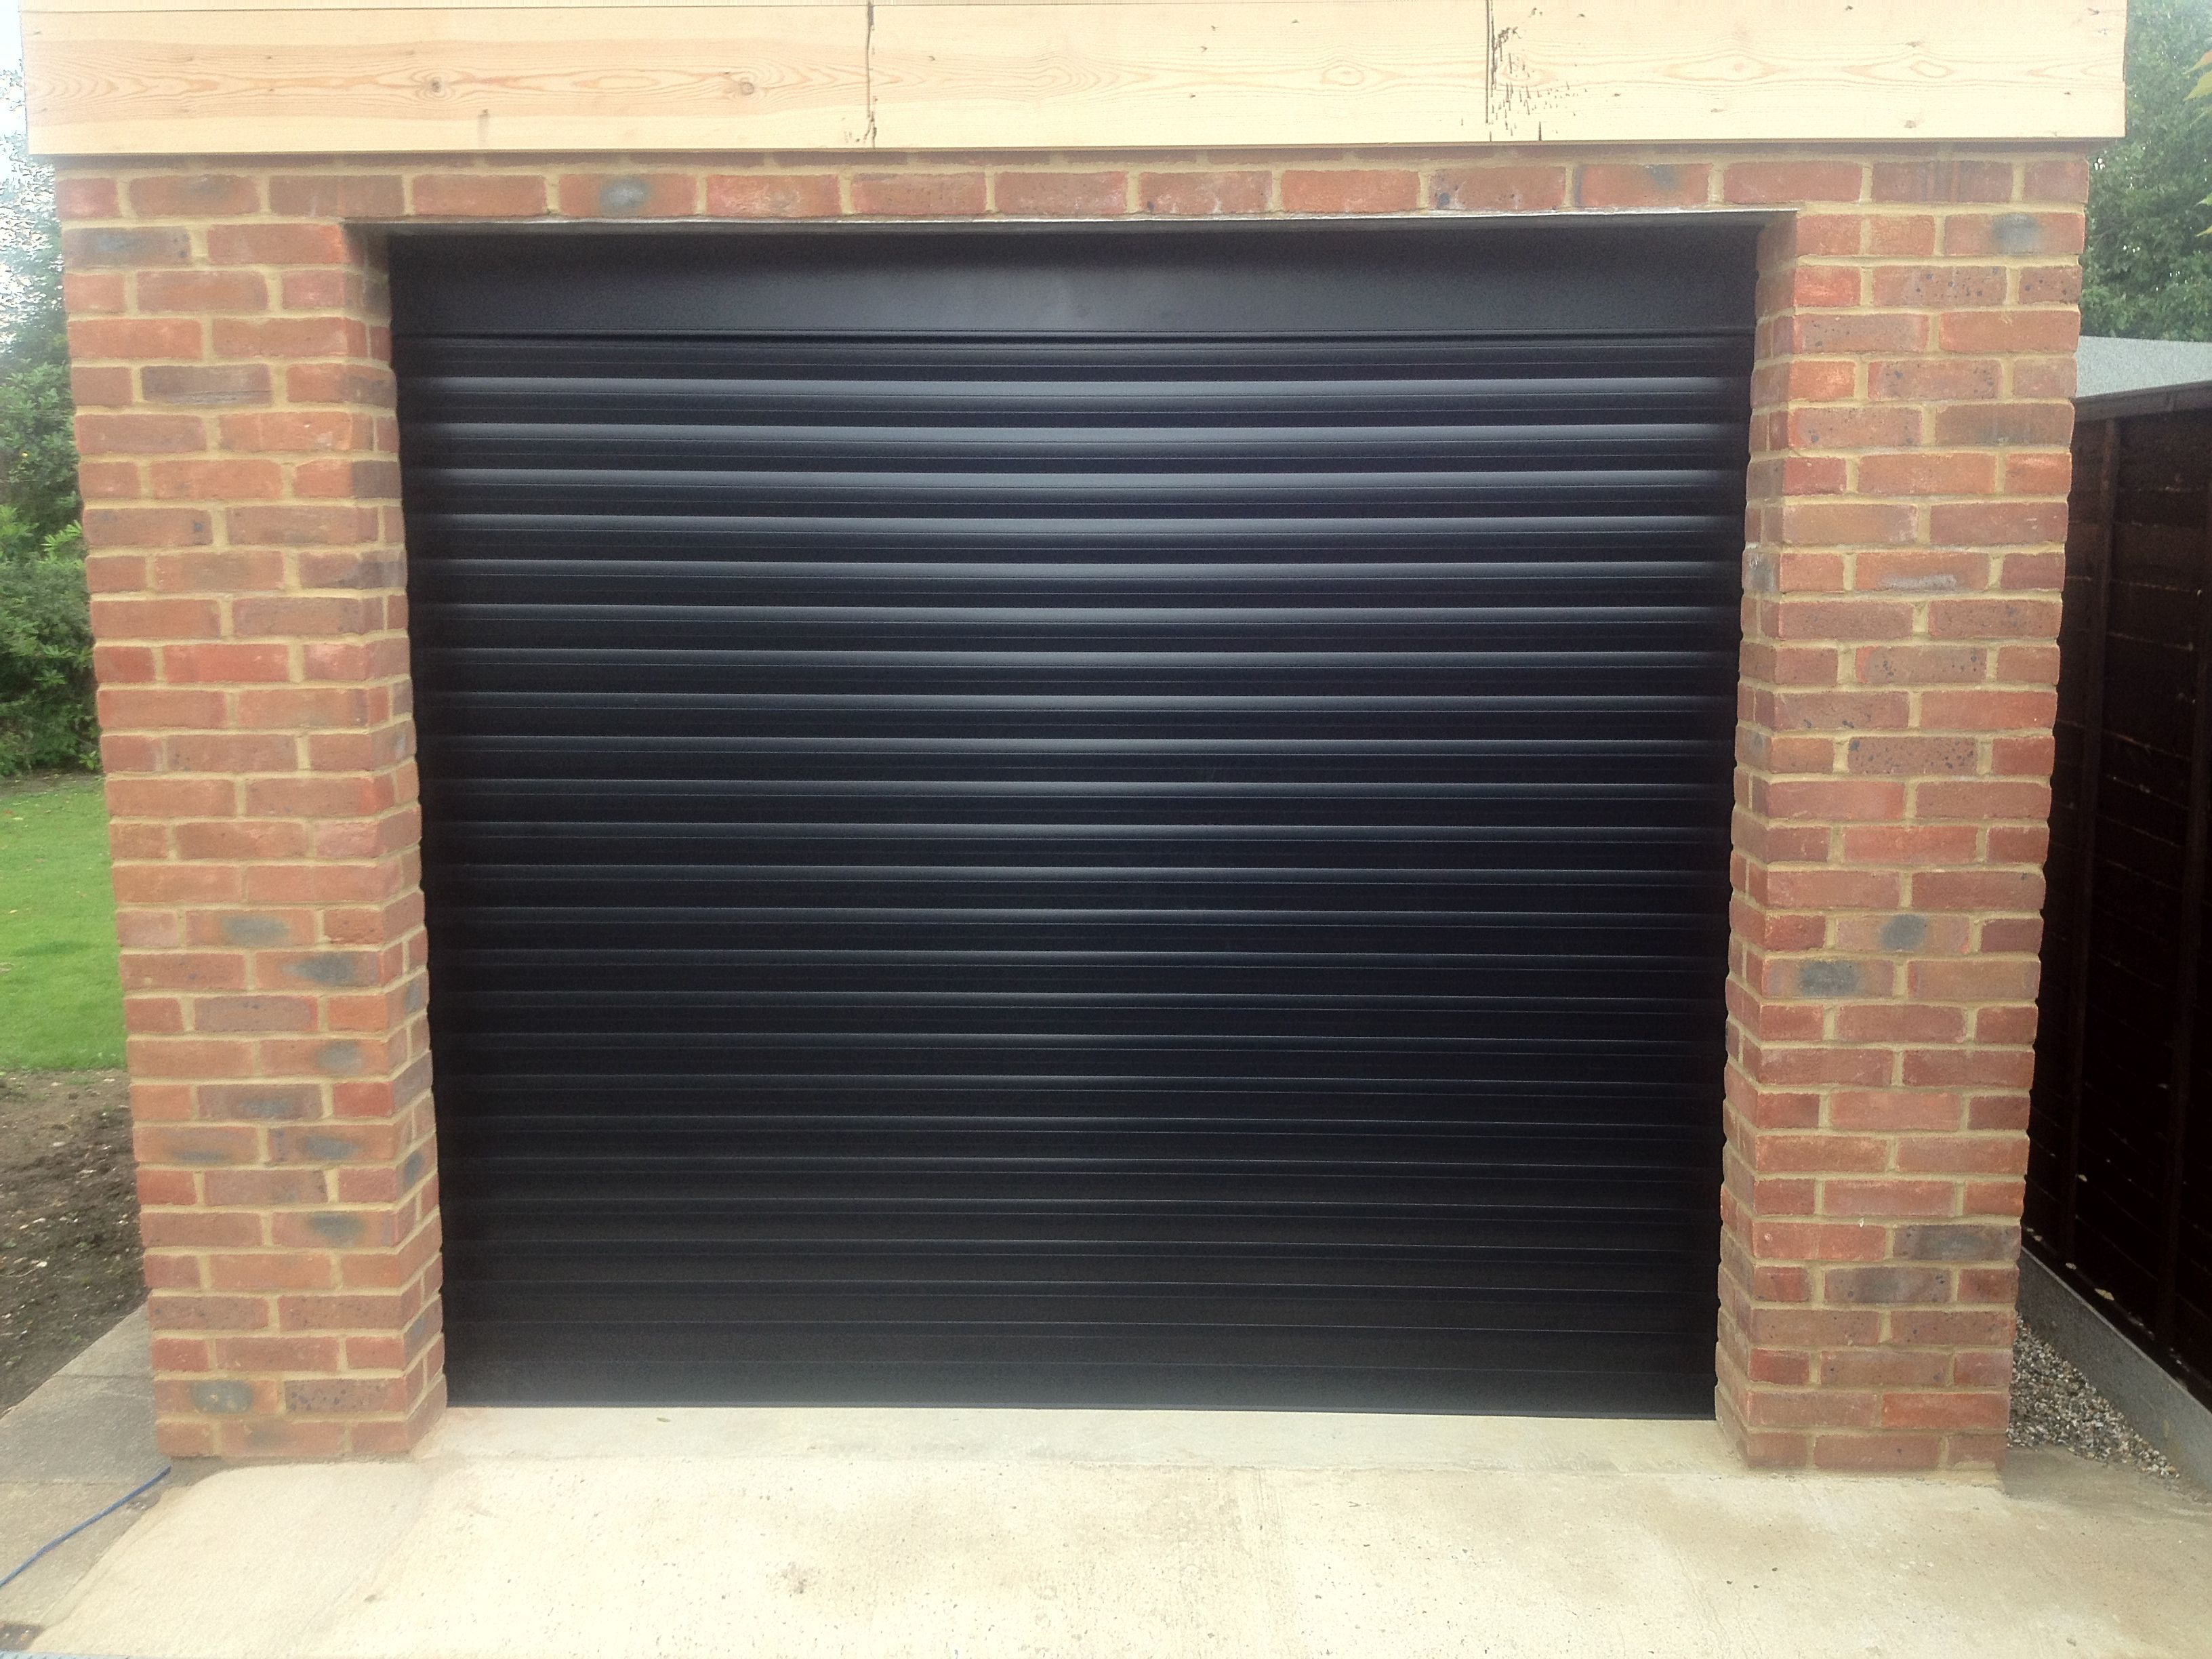 Rsg7000 Electrically Operated Security Roller Garage Doors Fitted